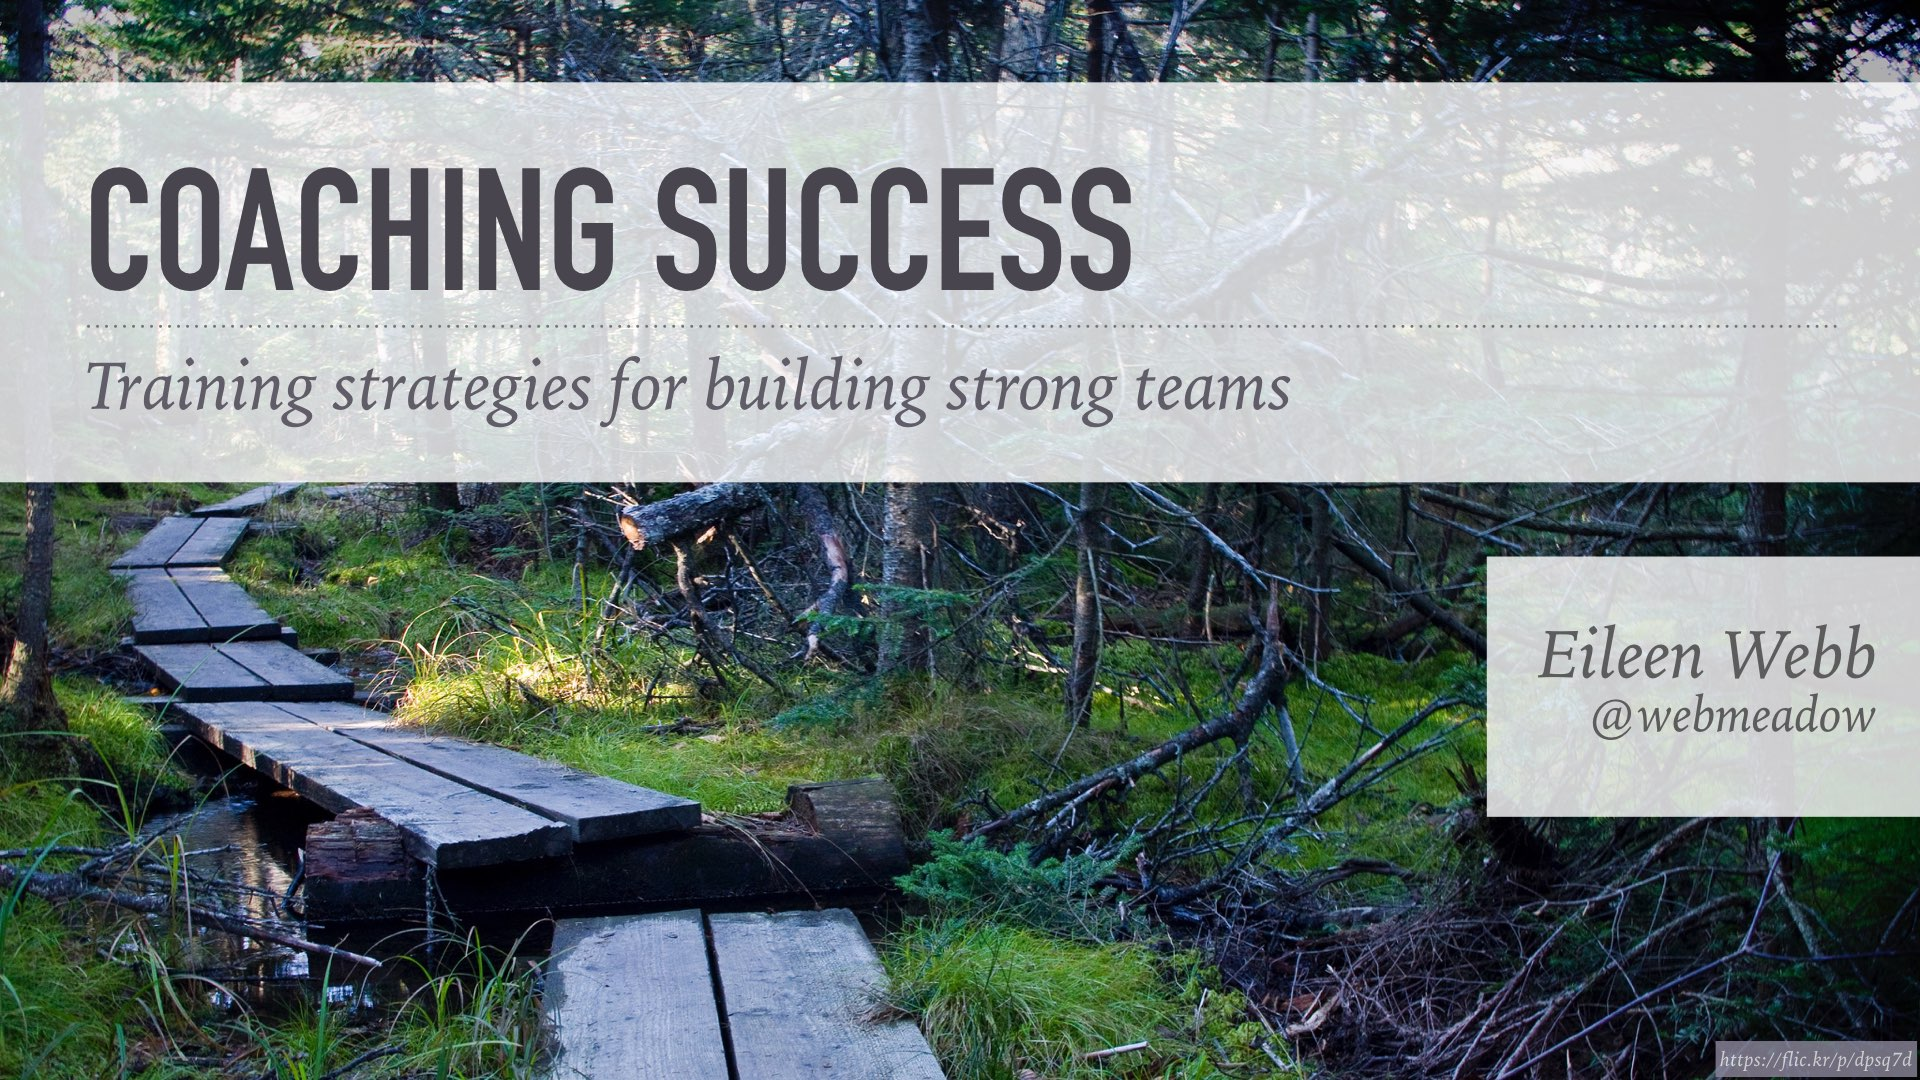 Coaching Success: Training Strategies for Building Strong Teams